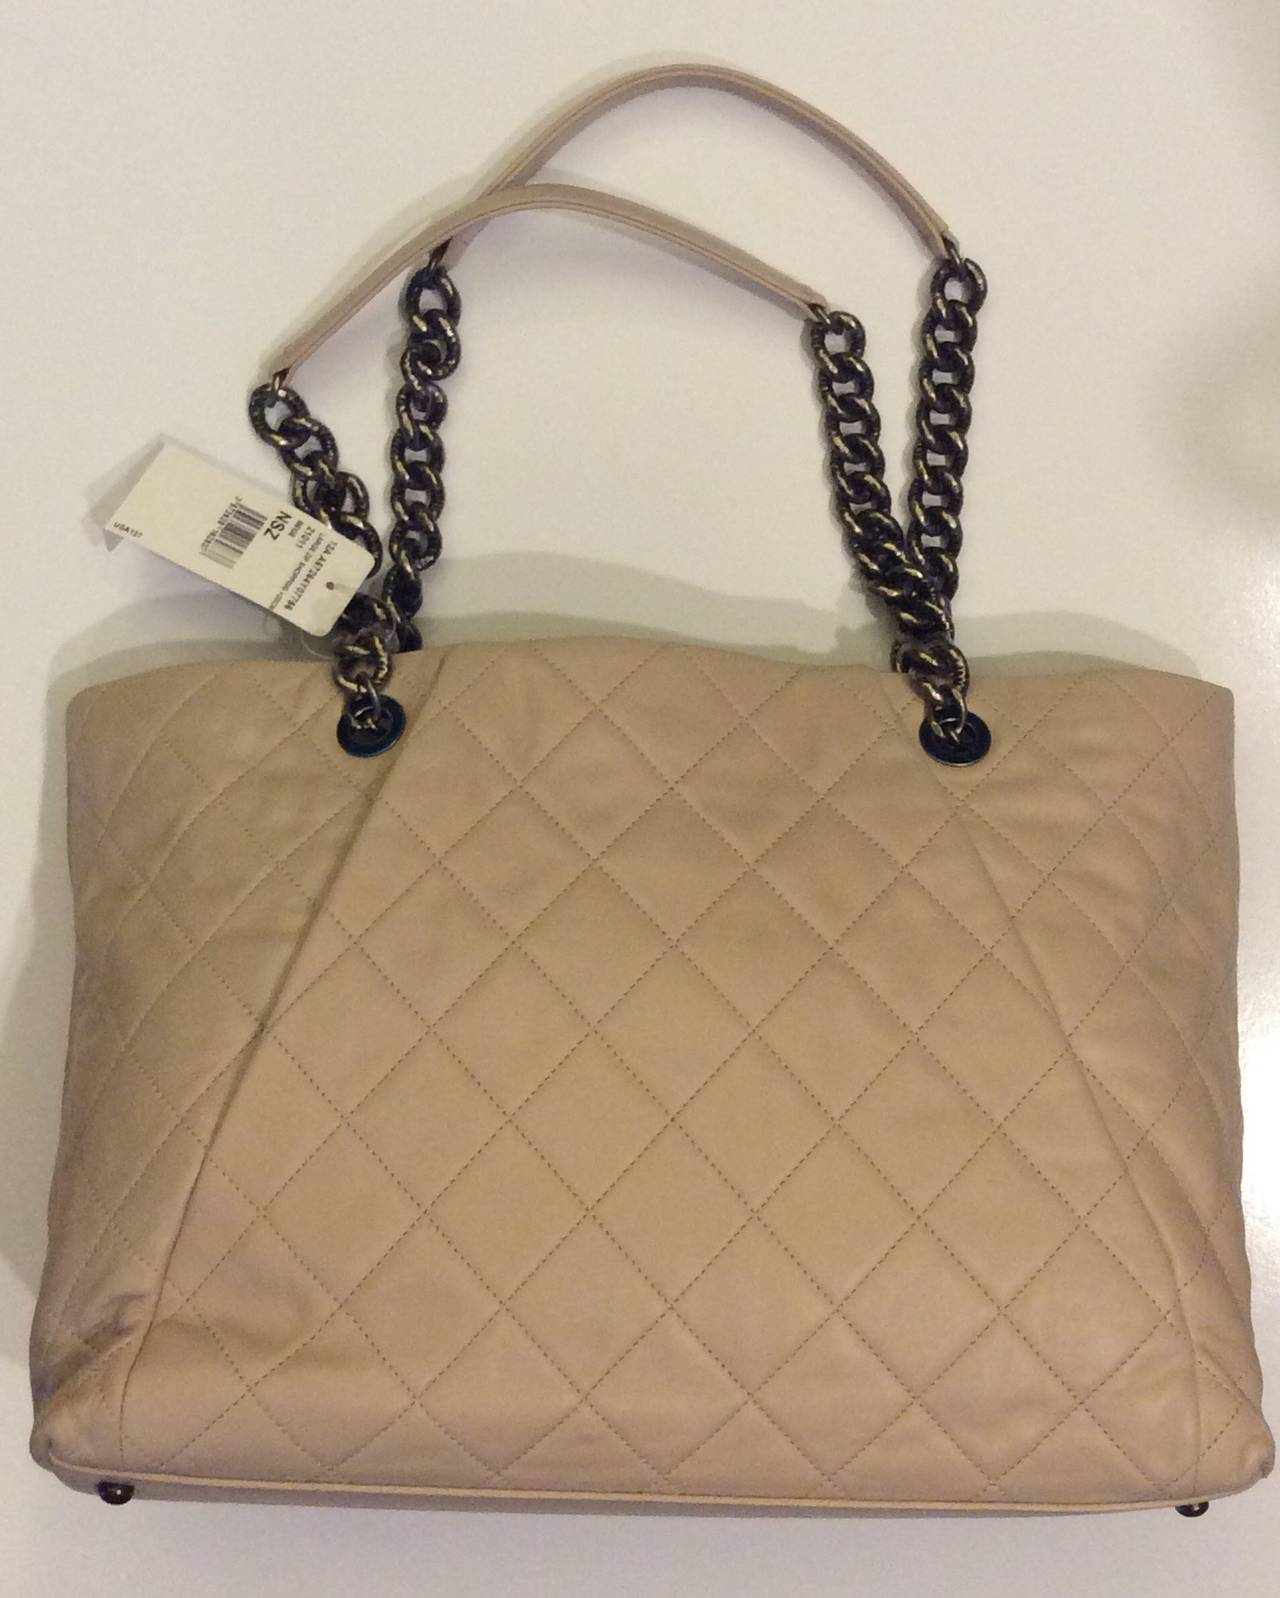 f51f4697502d Chanel Large Zip Shopping Bag 30cm | Stanford Center for Opportunity ...